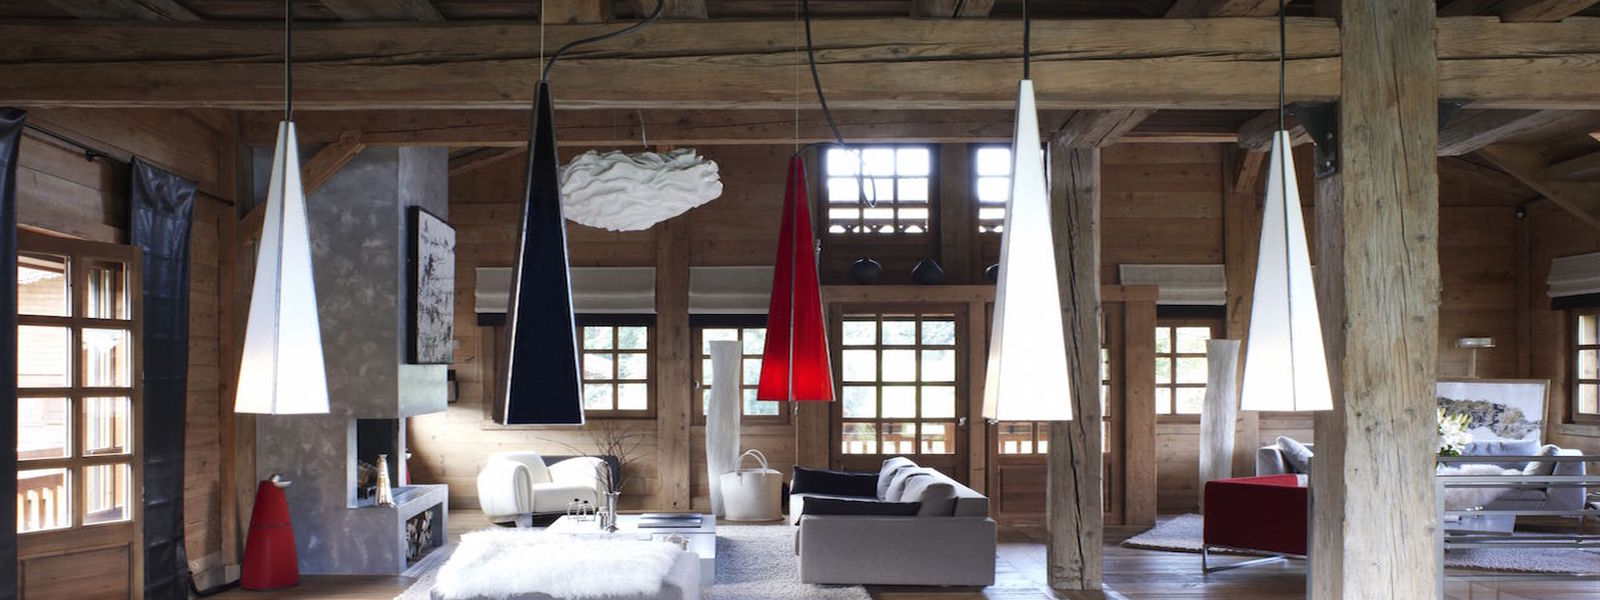 Luxury Chalet Megeve surrounded by French Alps